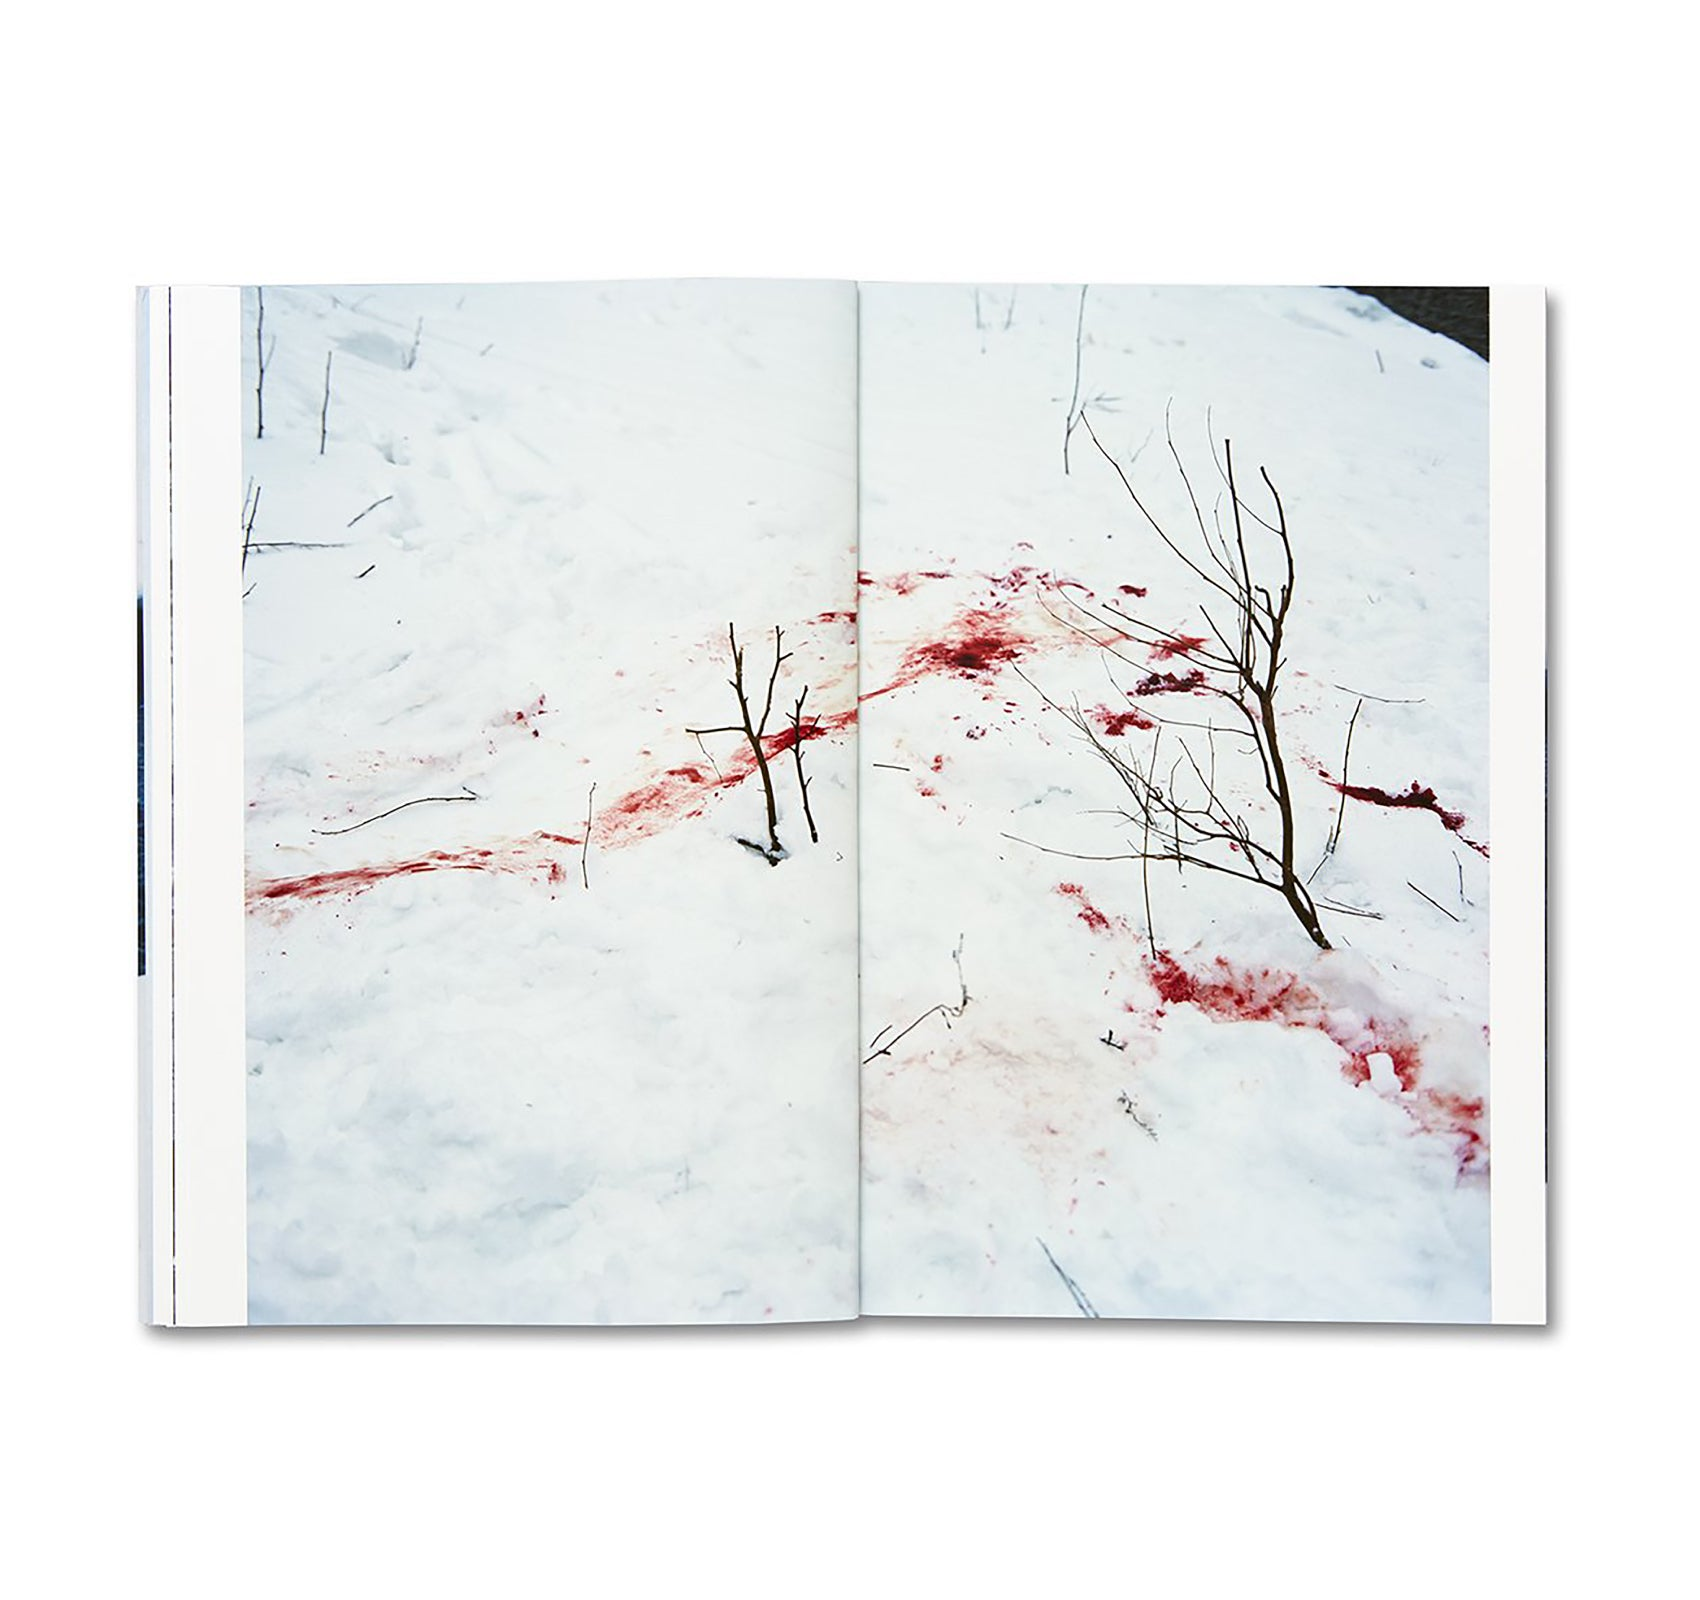 TRAILS by Takashi Homma [SIGNED]